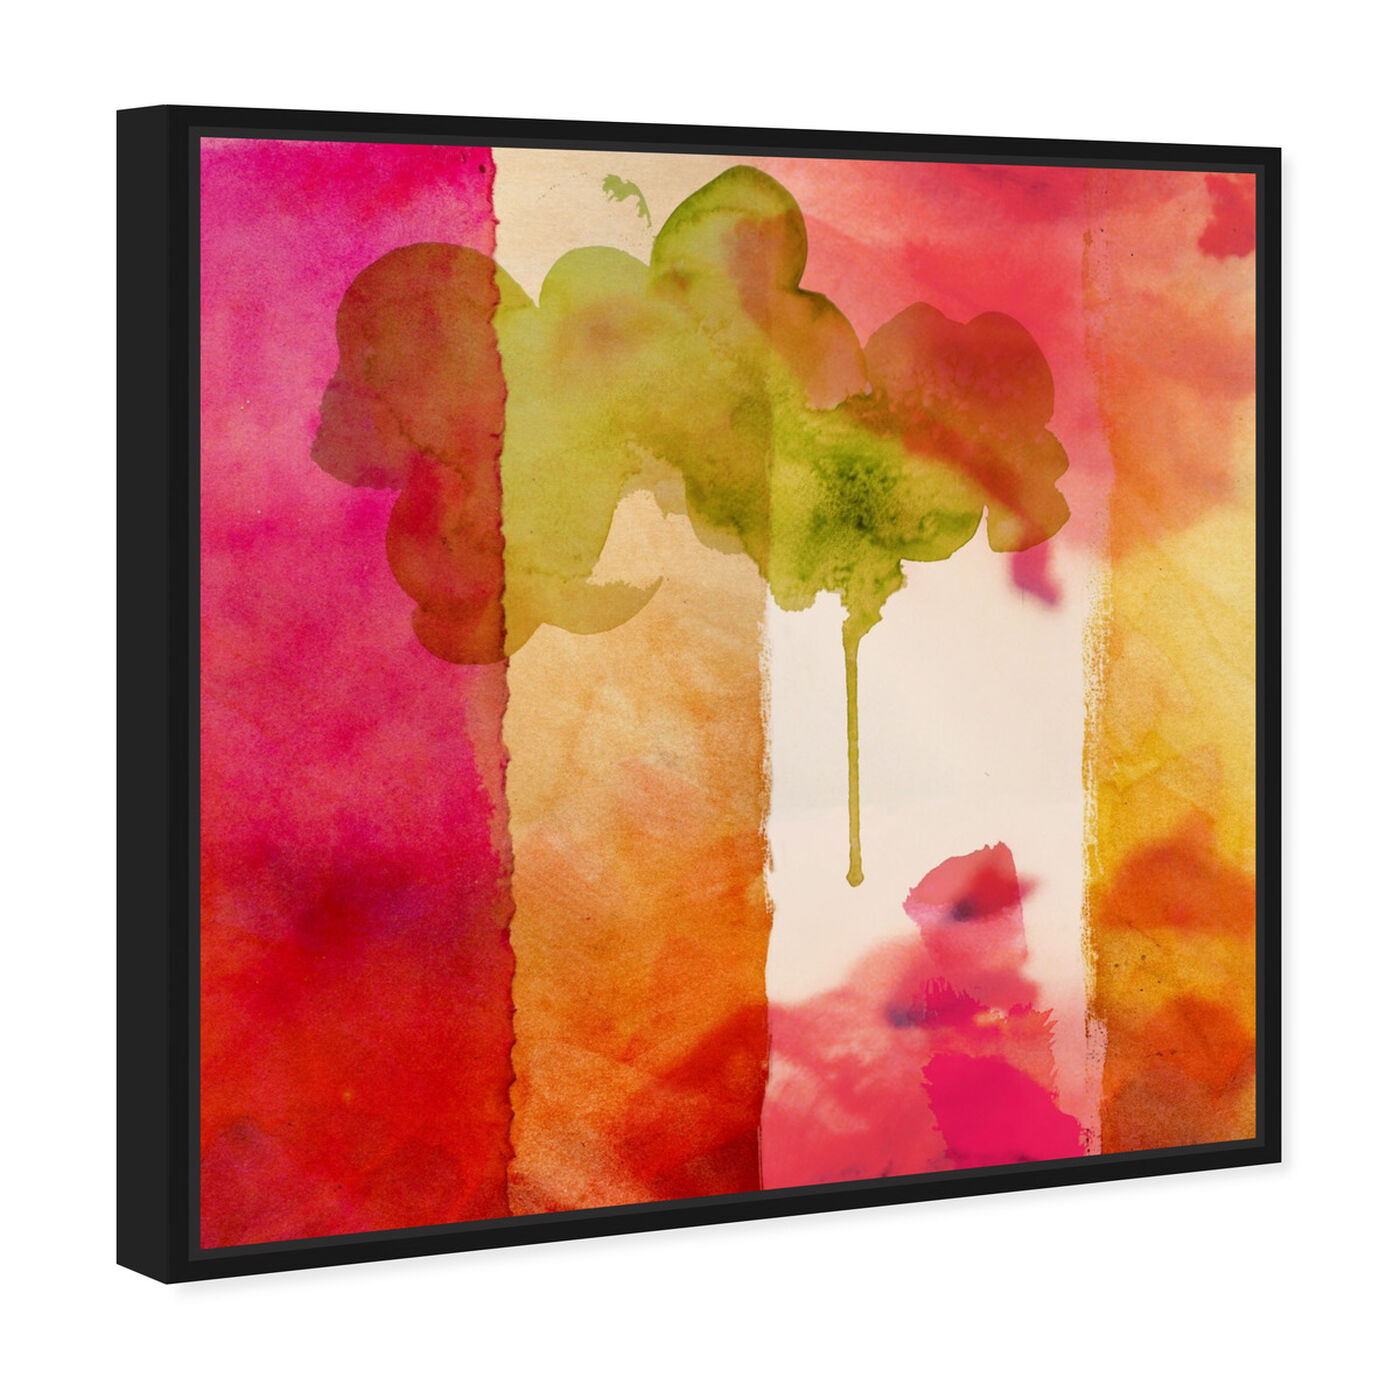 Angled view of Amber Velvet featuring abstract and watercolor art.